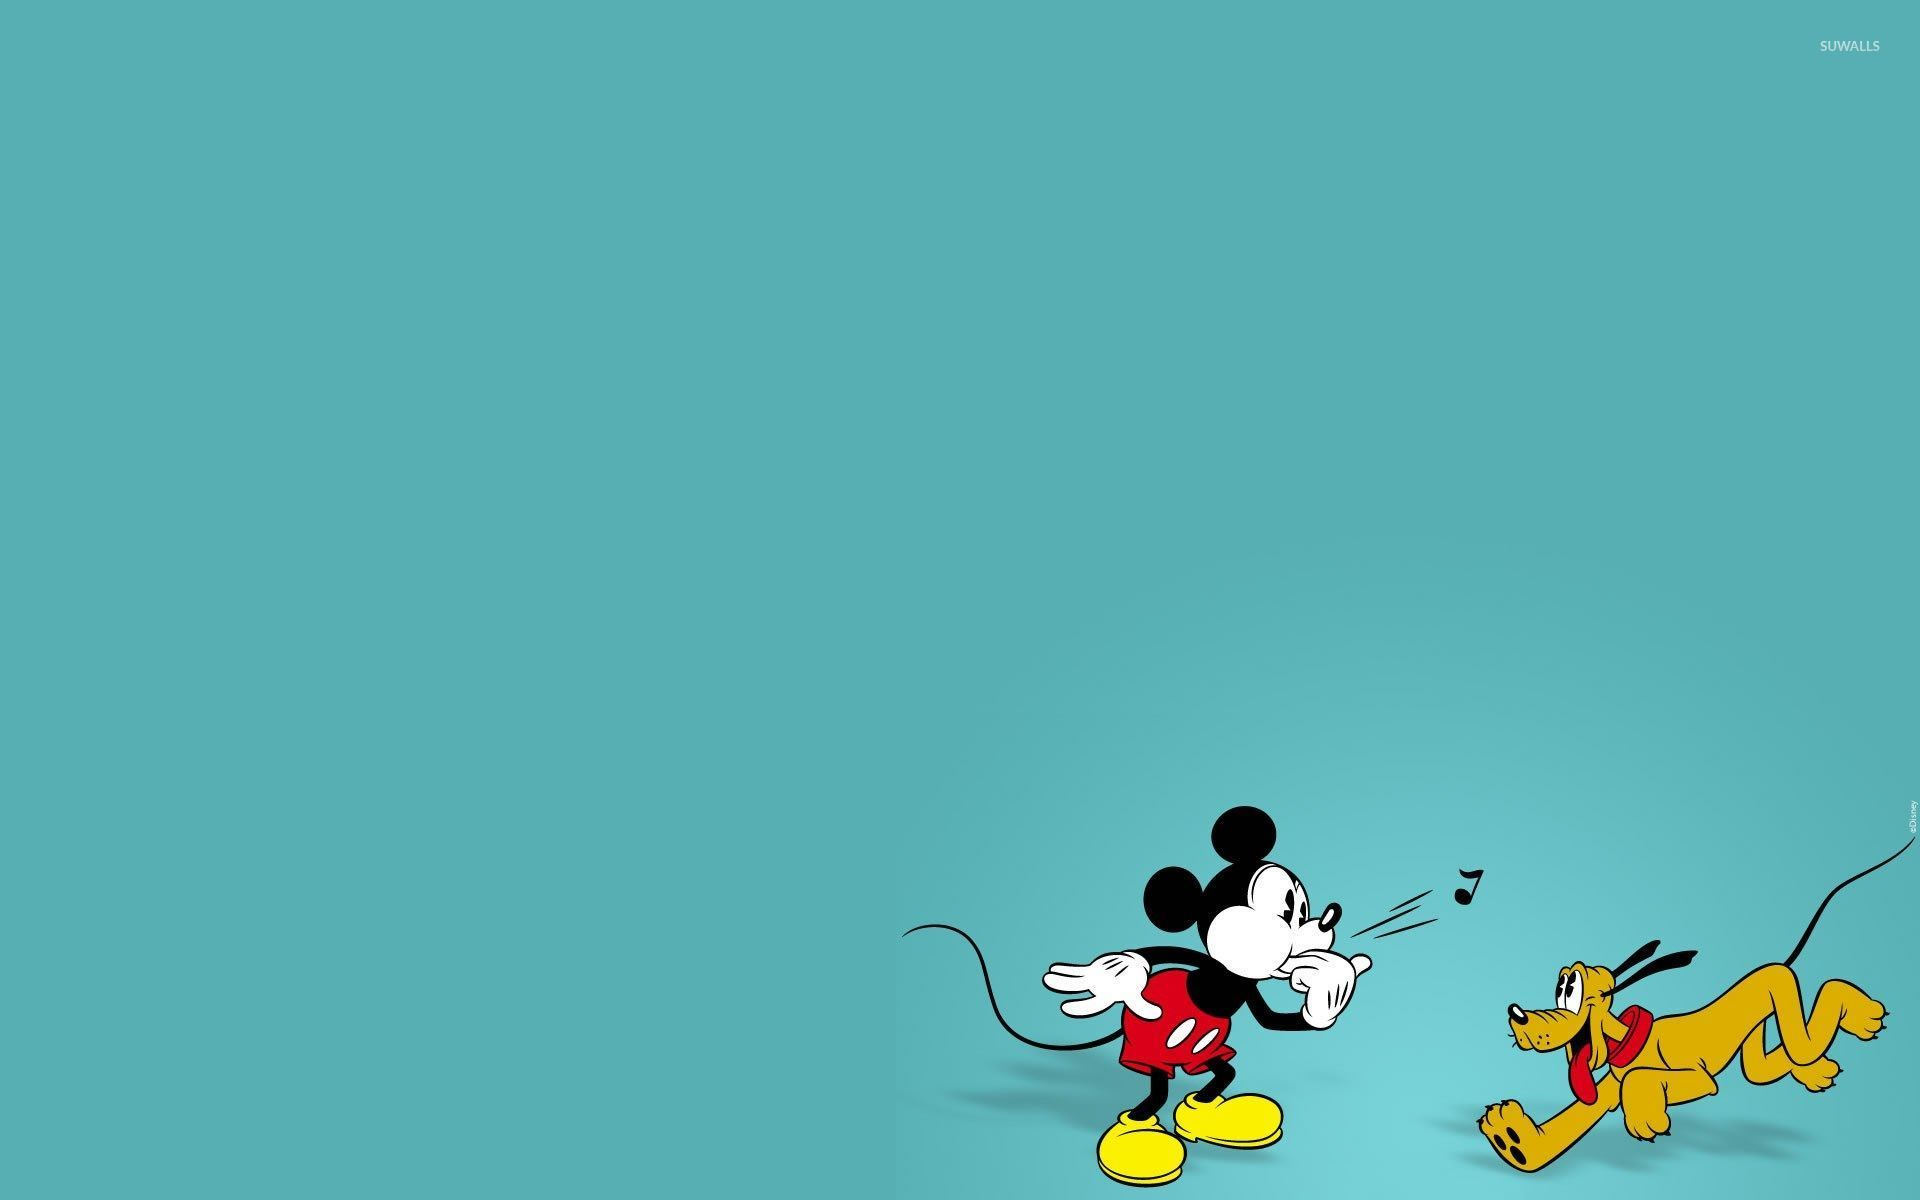 Mickey Playing With Pluto Wallpaper 1920x1200 Jpg